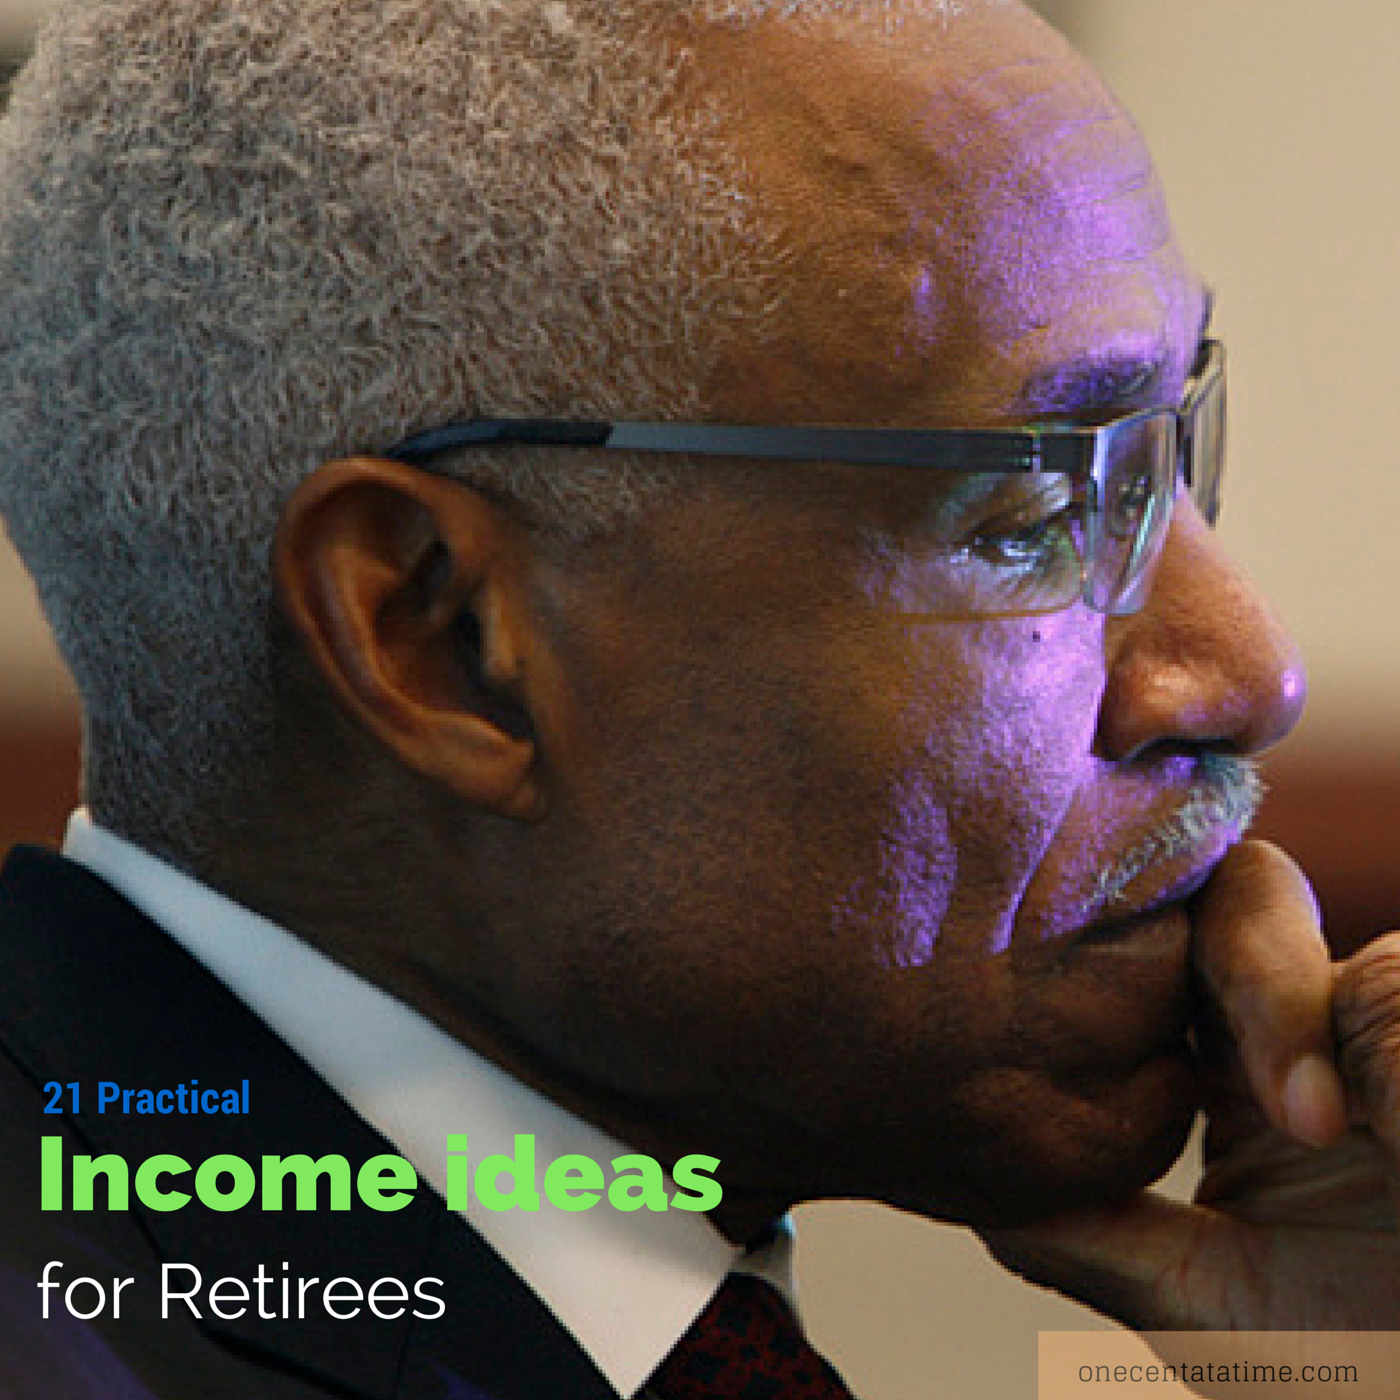 Income ideas for Retiree